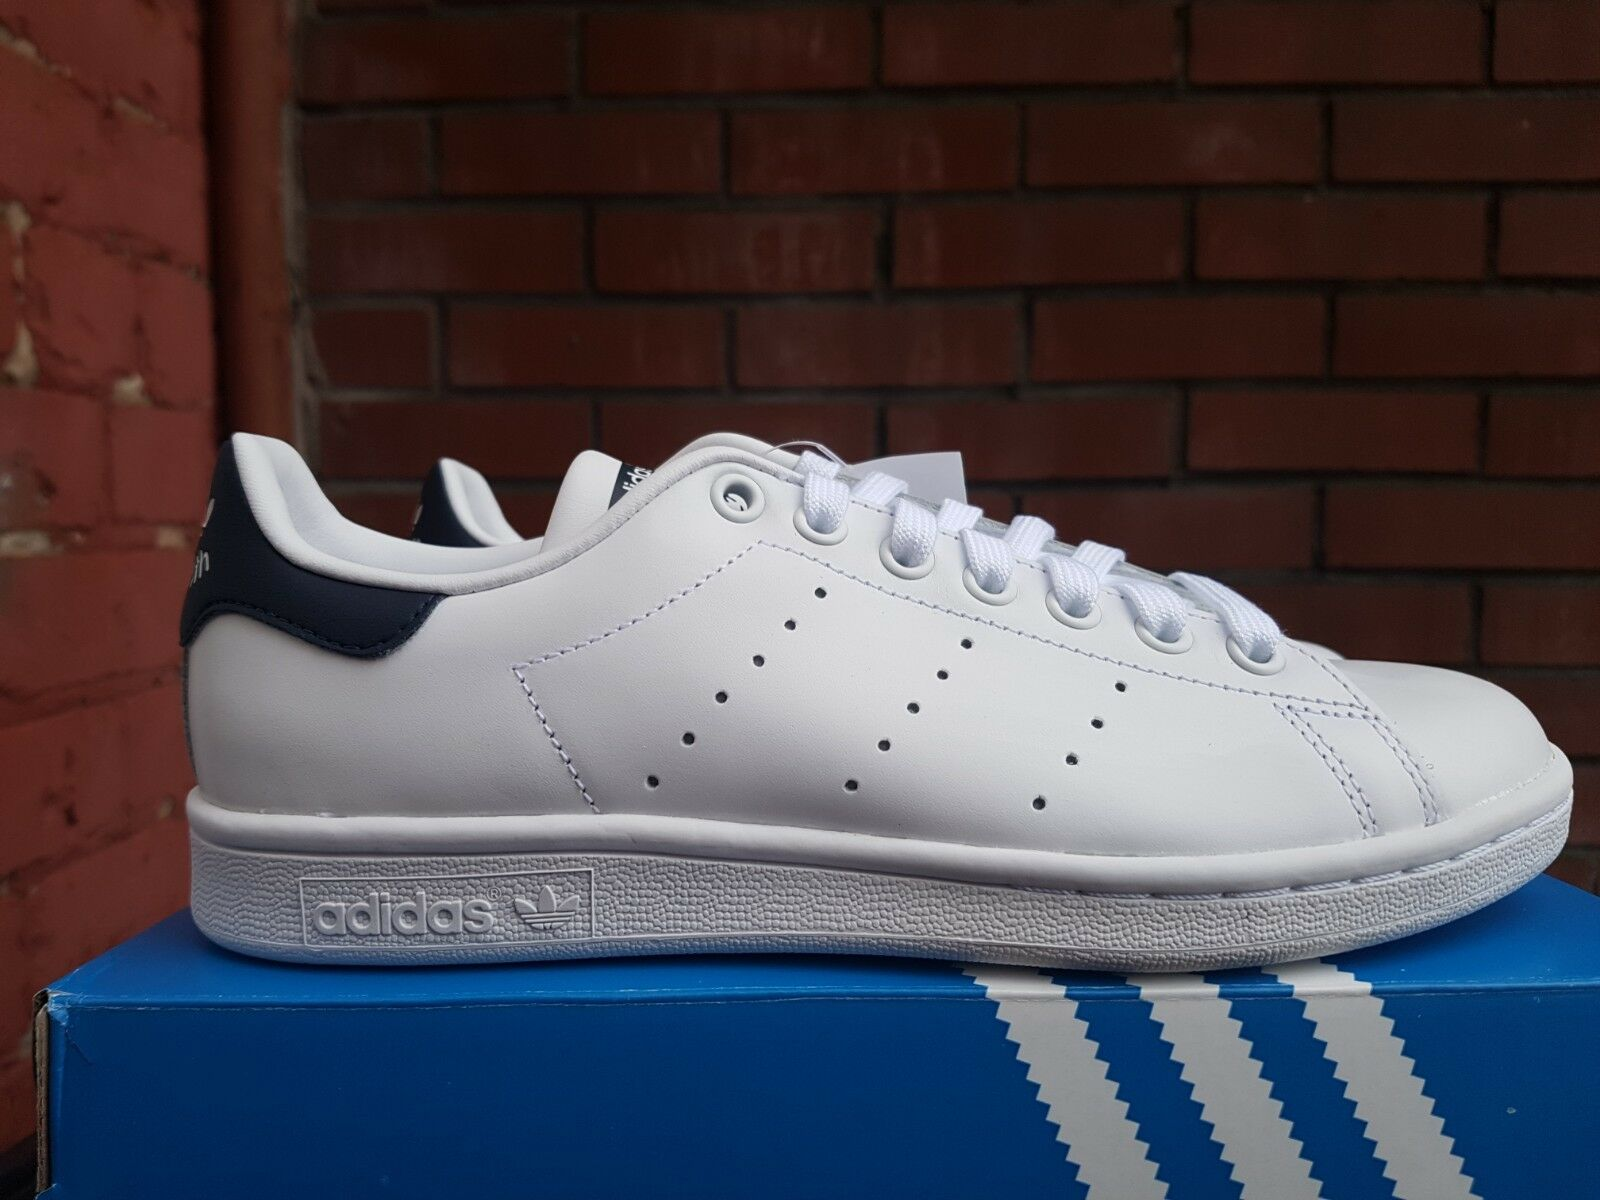 NEW IN THE BOX BOX BOX ADIDAS STAN SMITH M20325 SHOES FOR WOMEN 3cd5bd